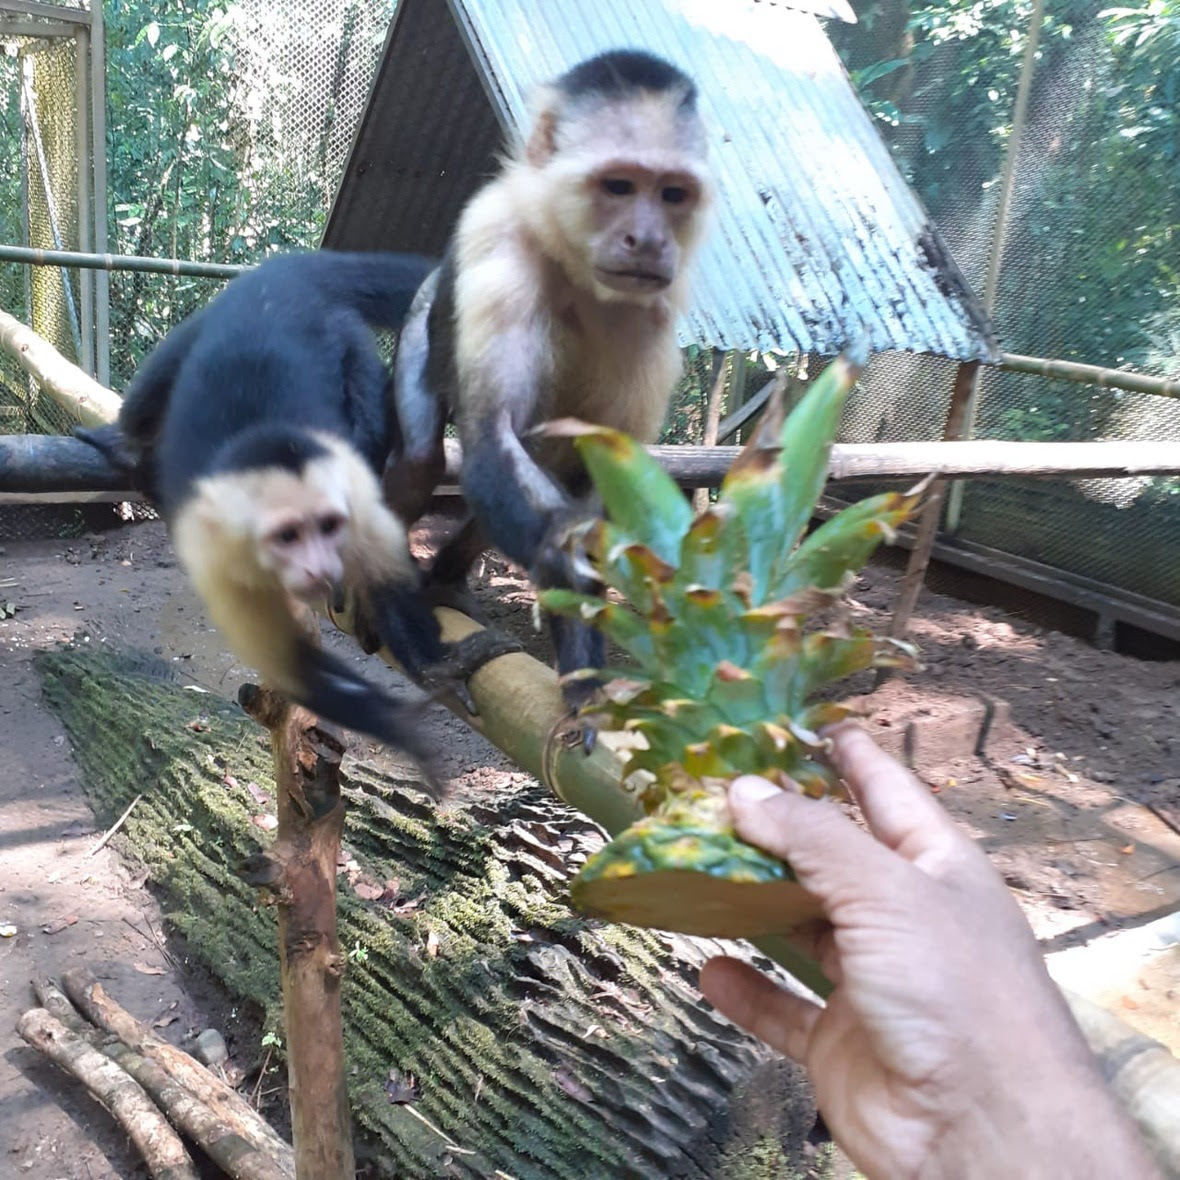 Two capuchins look to a pineapple head, one reaching for it.